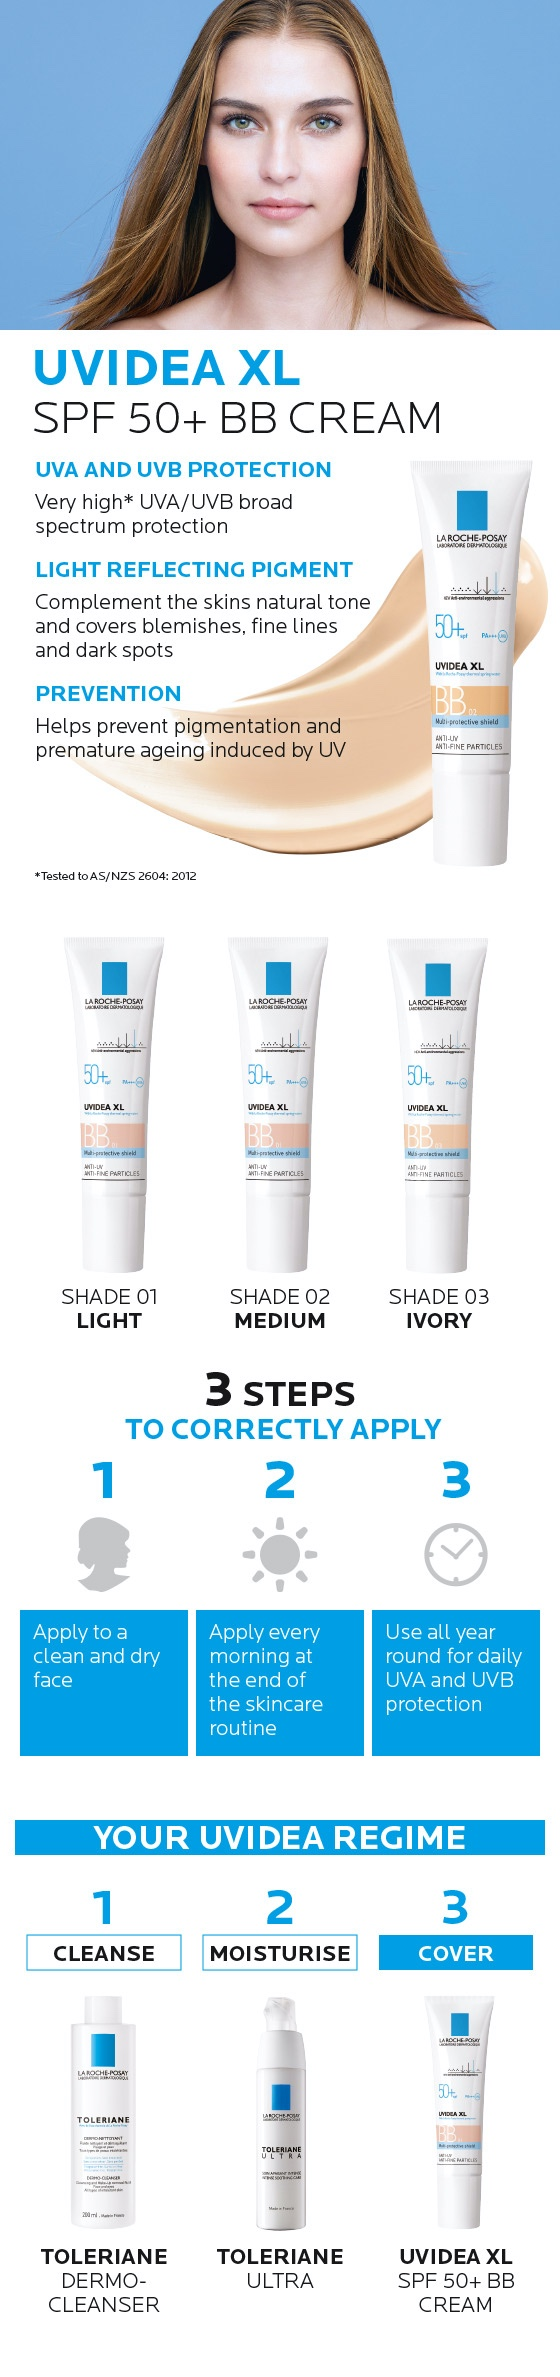 La Roche-Posay Uvidea XL BB Cream Shade 01 Light 30ml